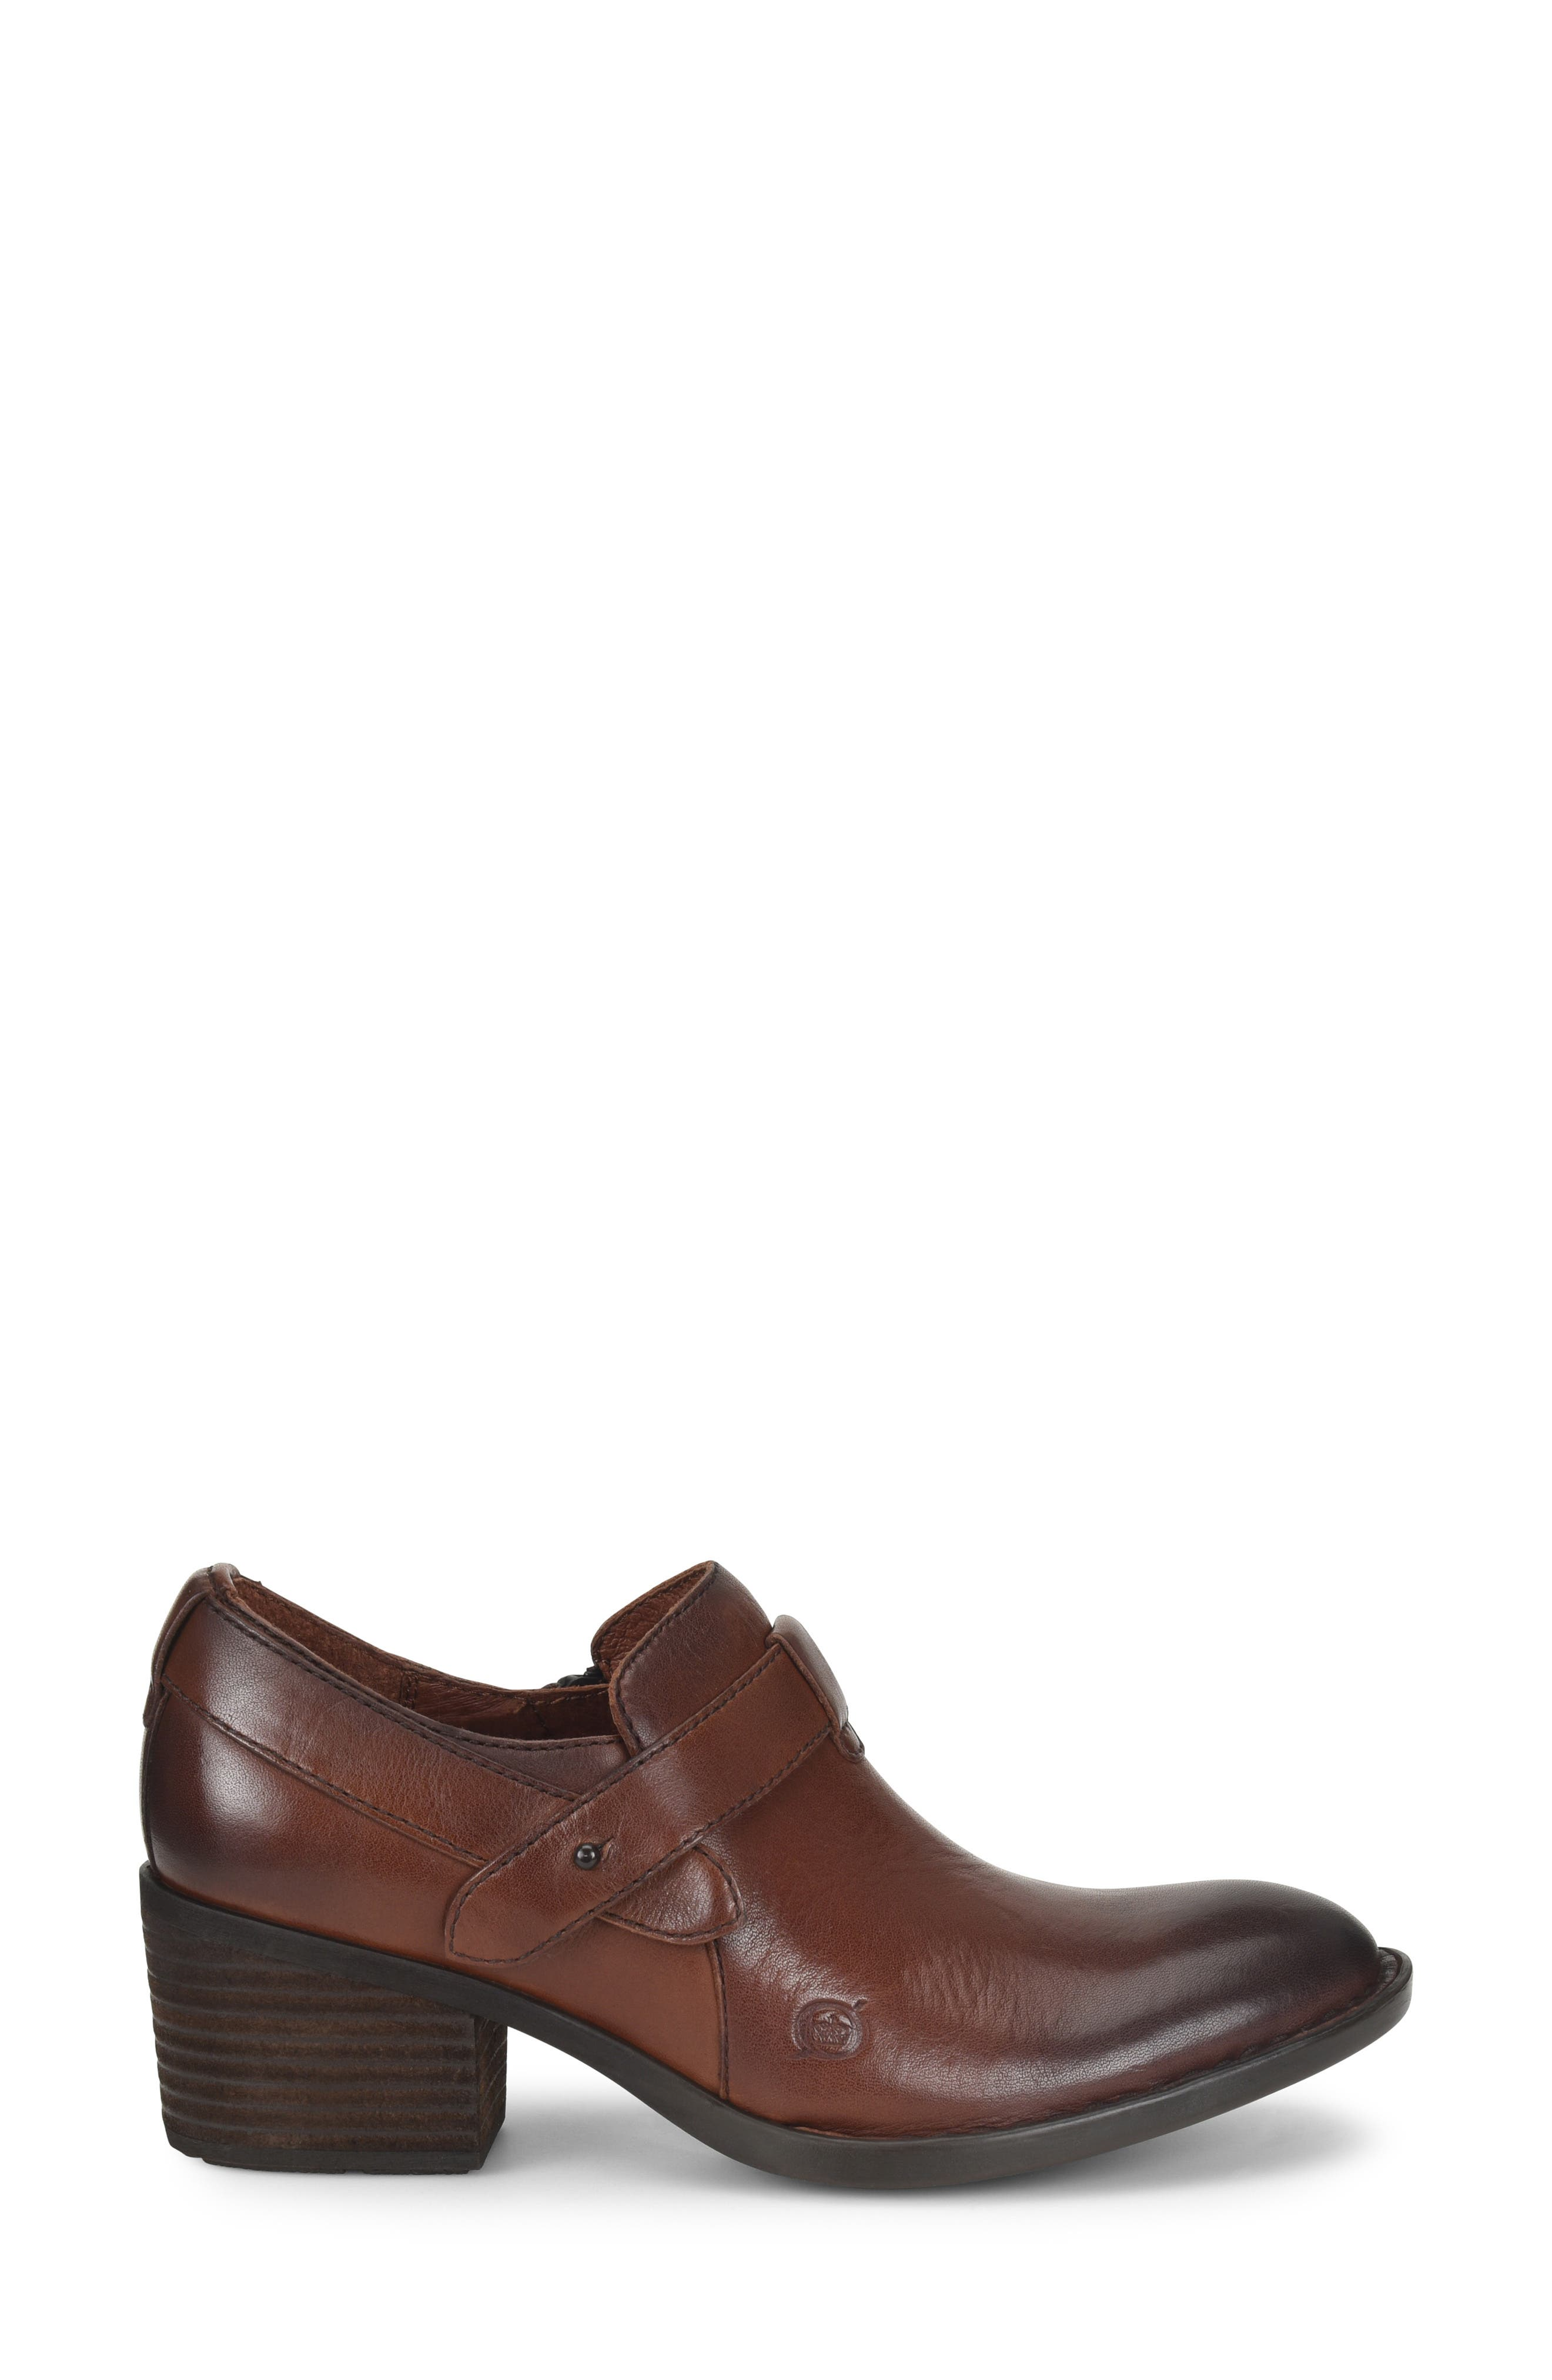 Timmons Bootie,                             Alternate thumbnail 3, color,                             BROWN LEATHER